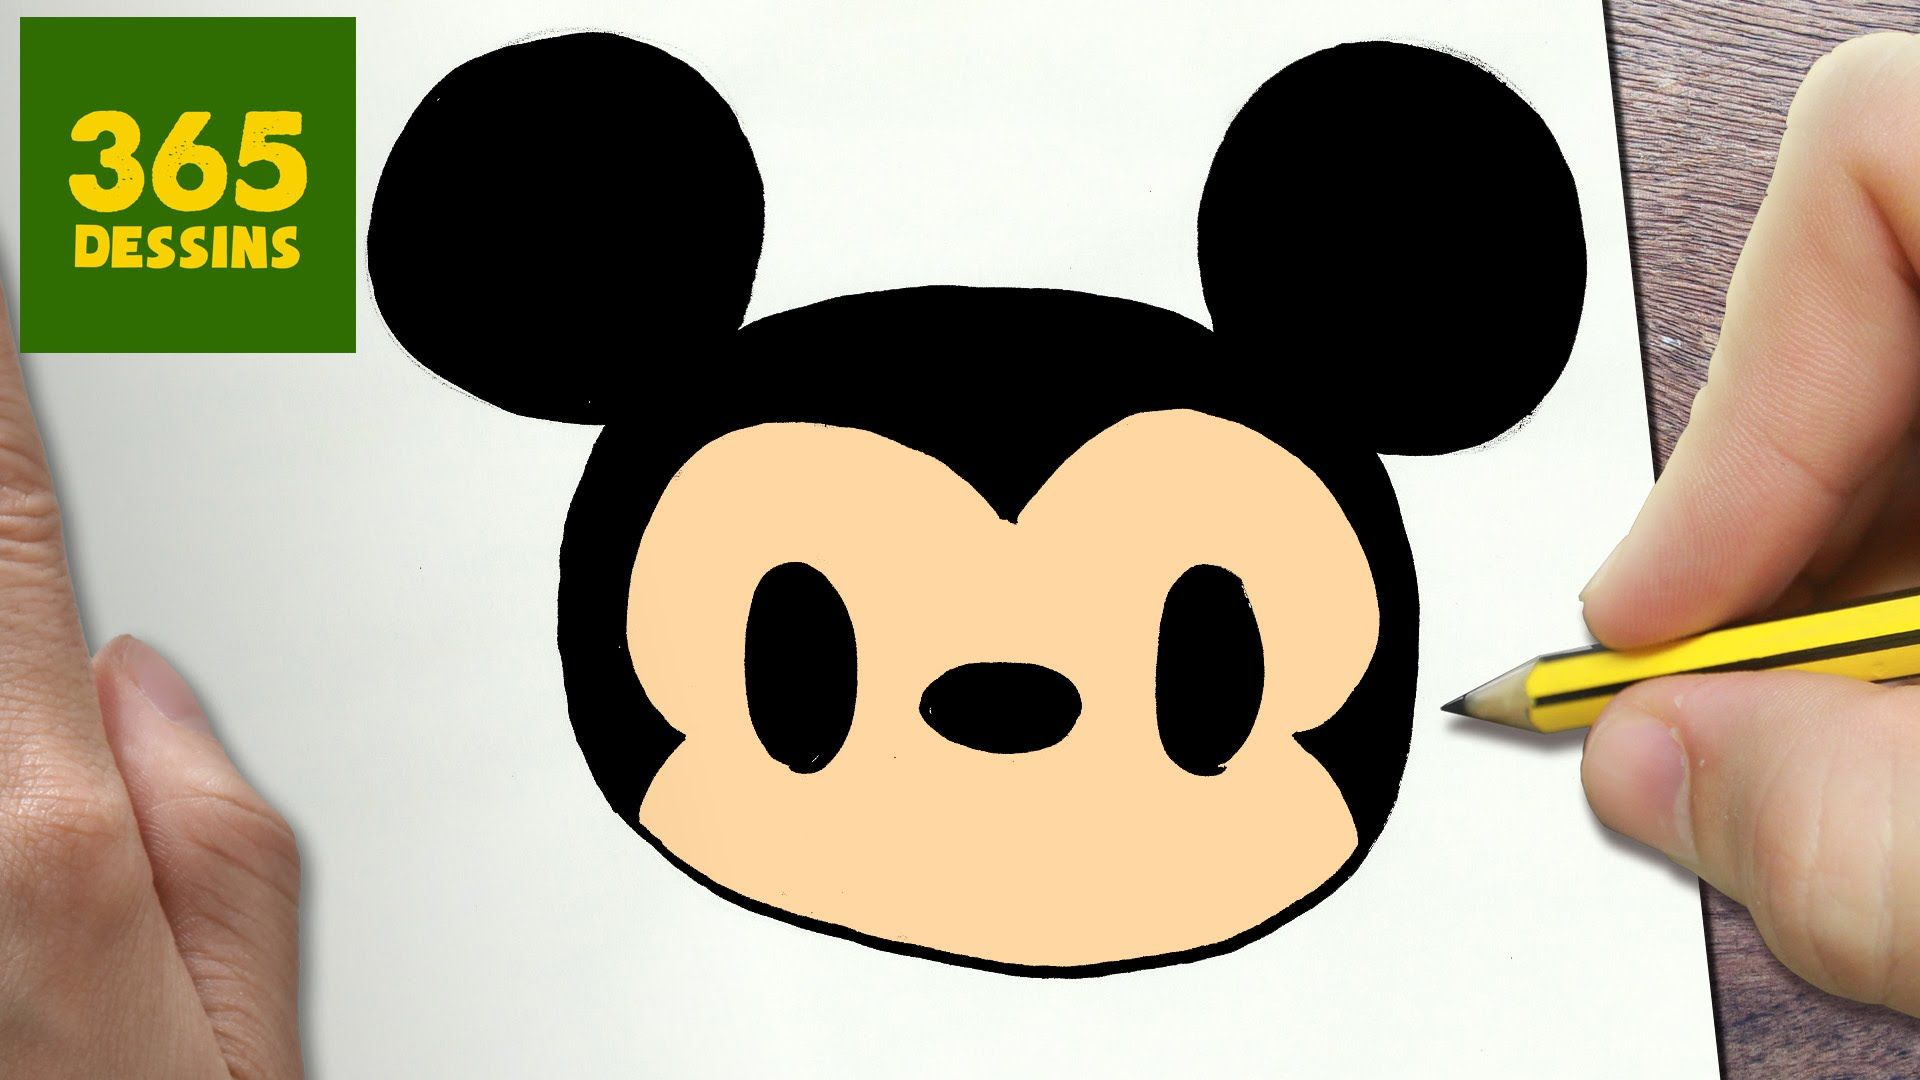 Comment Dessiner Mickey Mouse Kawaii étape Par étape